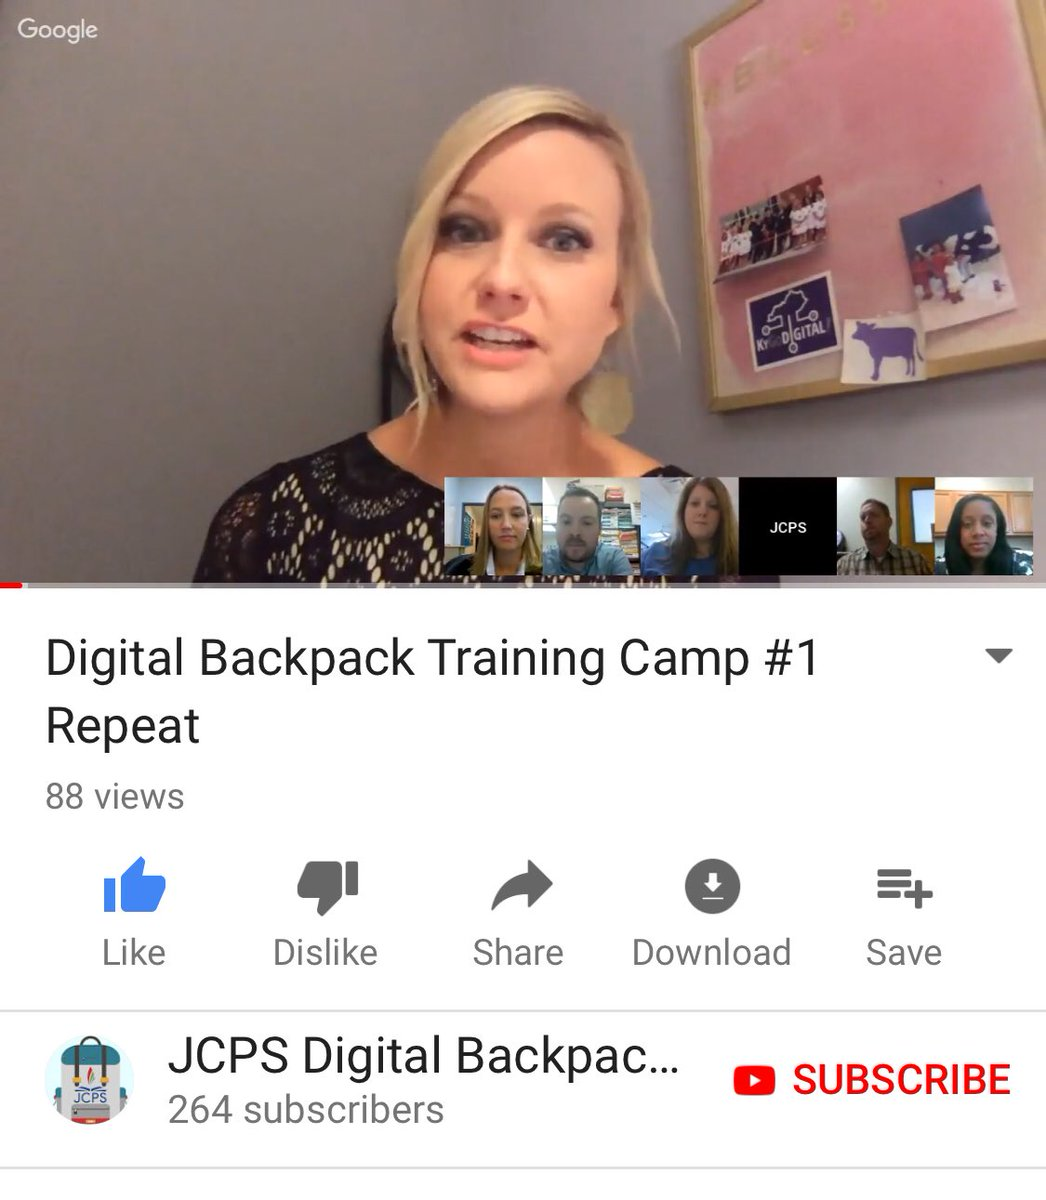 Great video by @heatherwarrell and her team about using our #JCPSBackpack #kygodigital